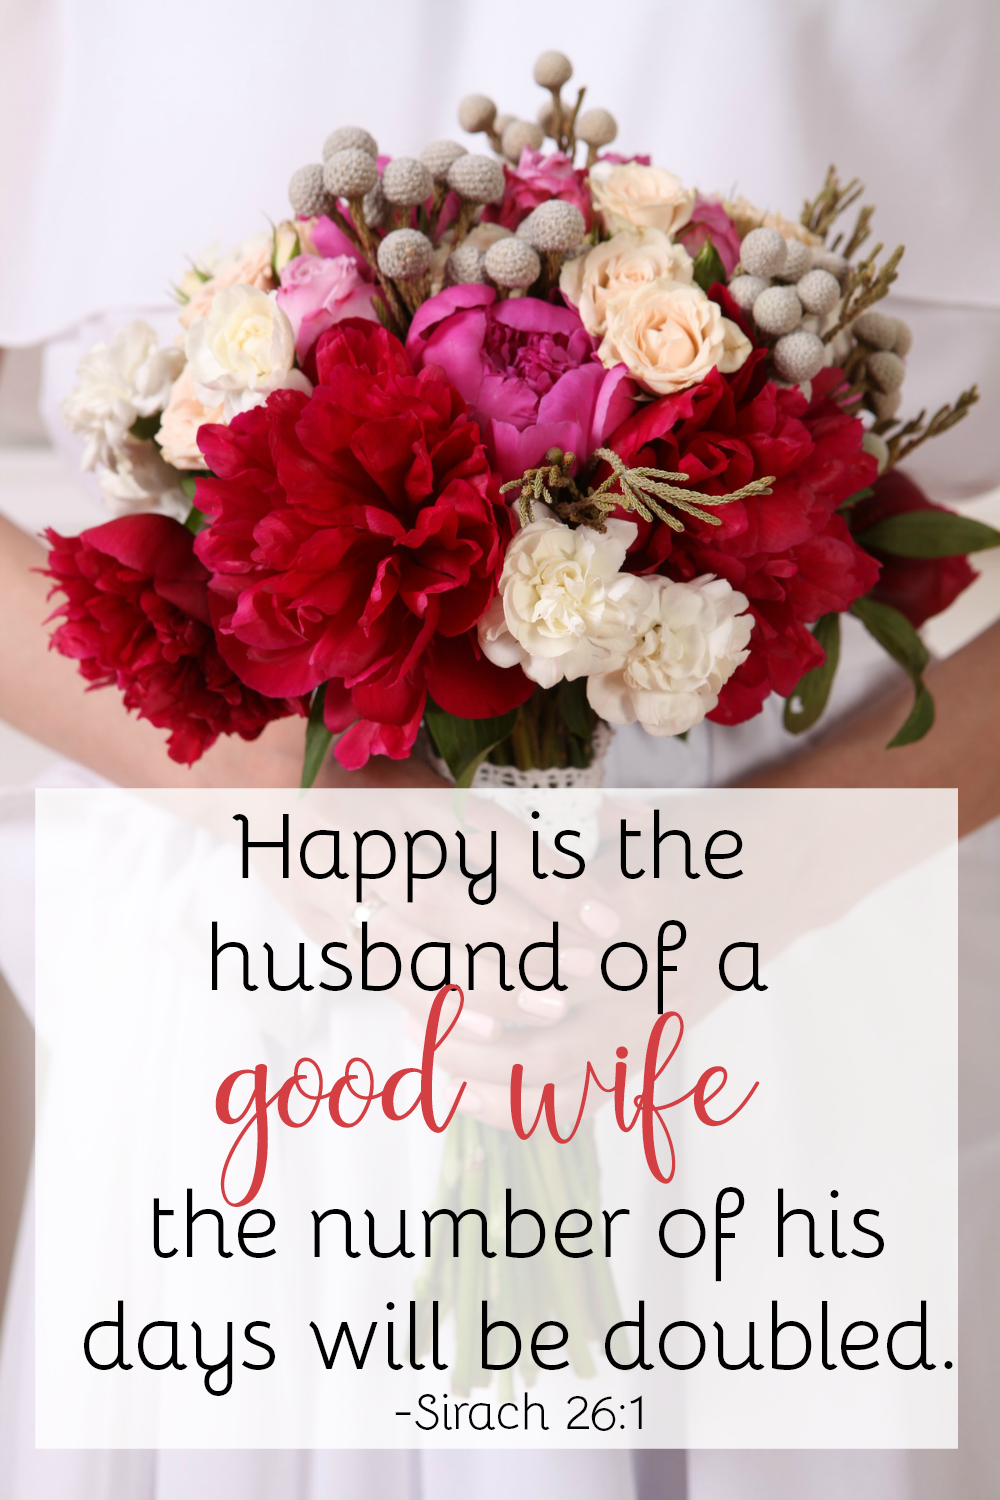 Happy is the husband of a good wife.